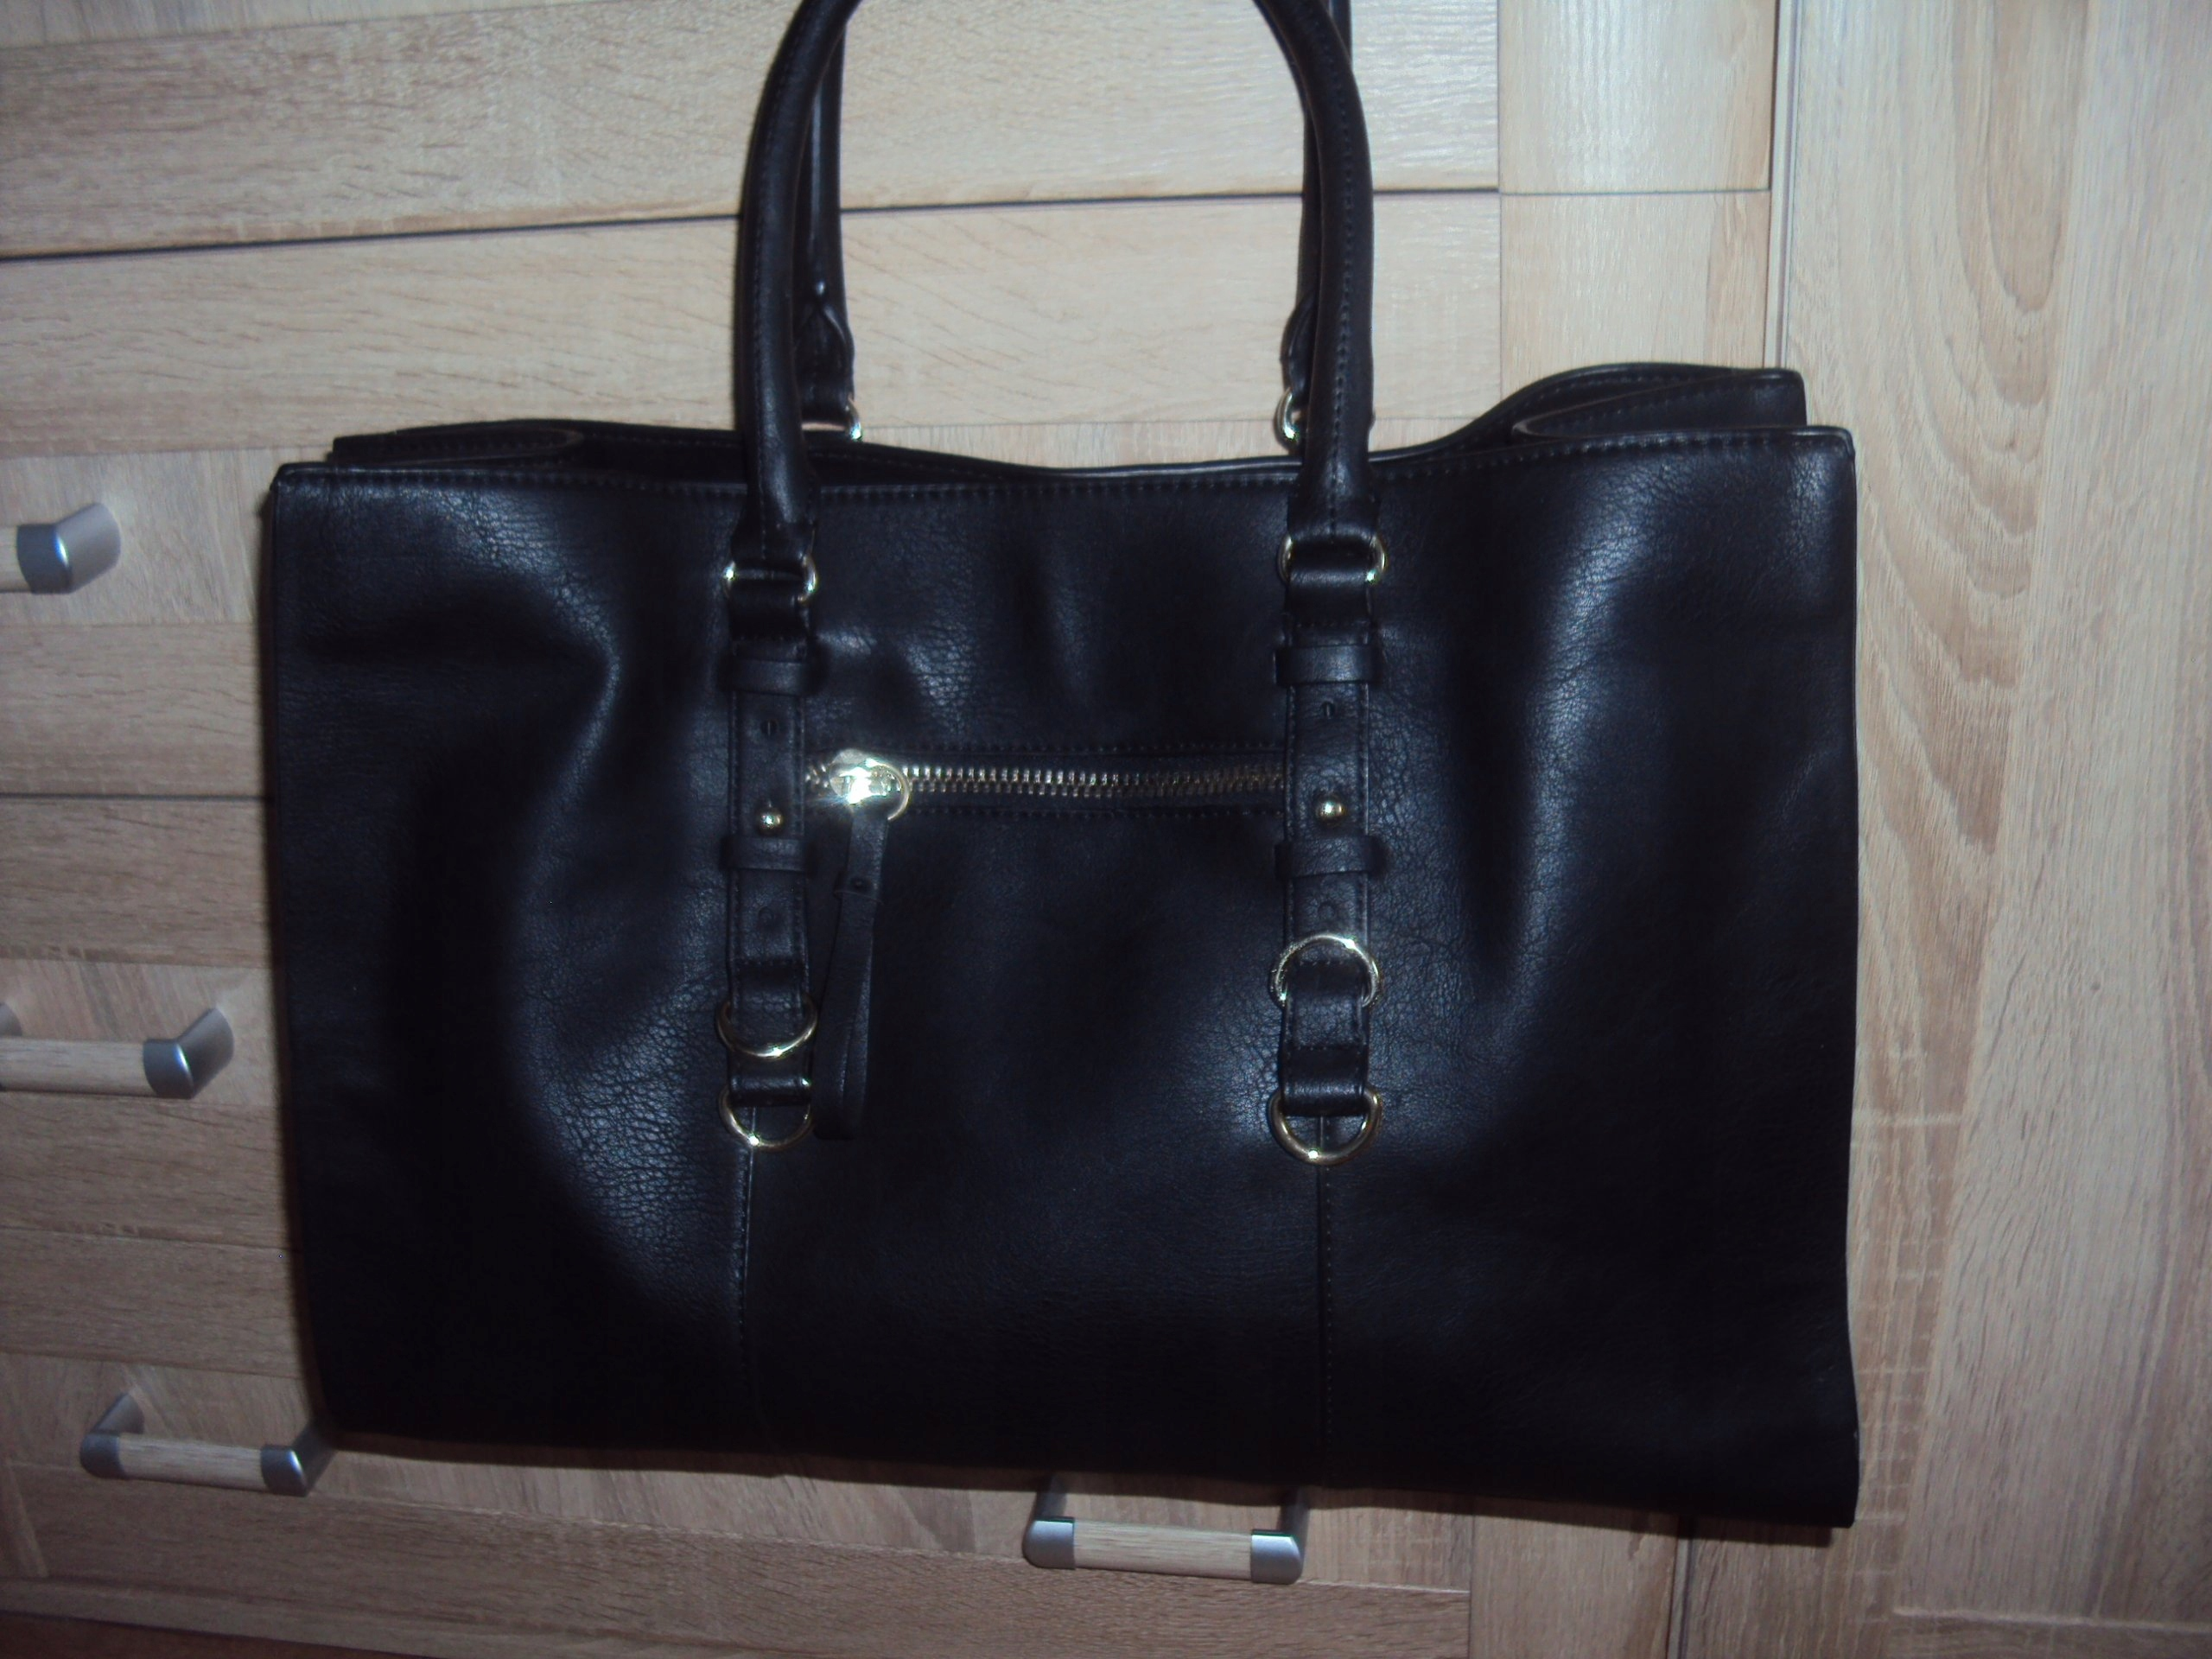 5804b18232a2e ZARA BASIC**shopper bag** J.N. czarna - 7587723933 - oficjalne ...